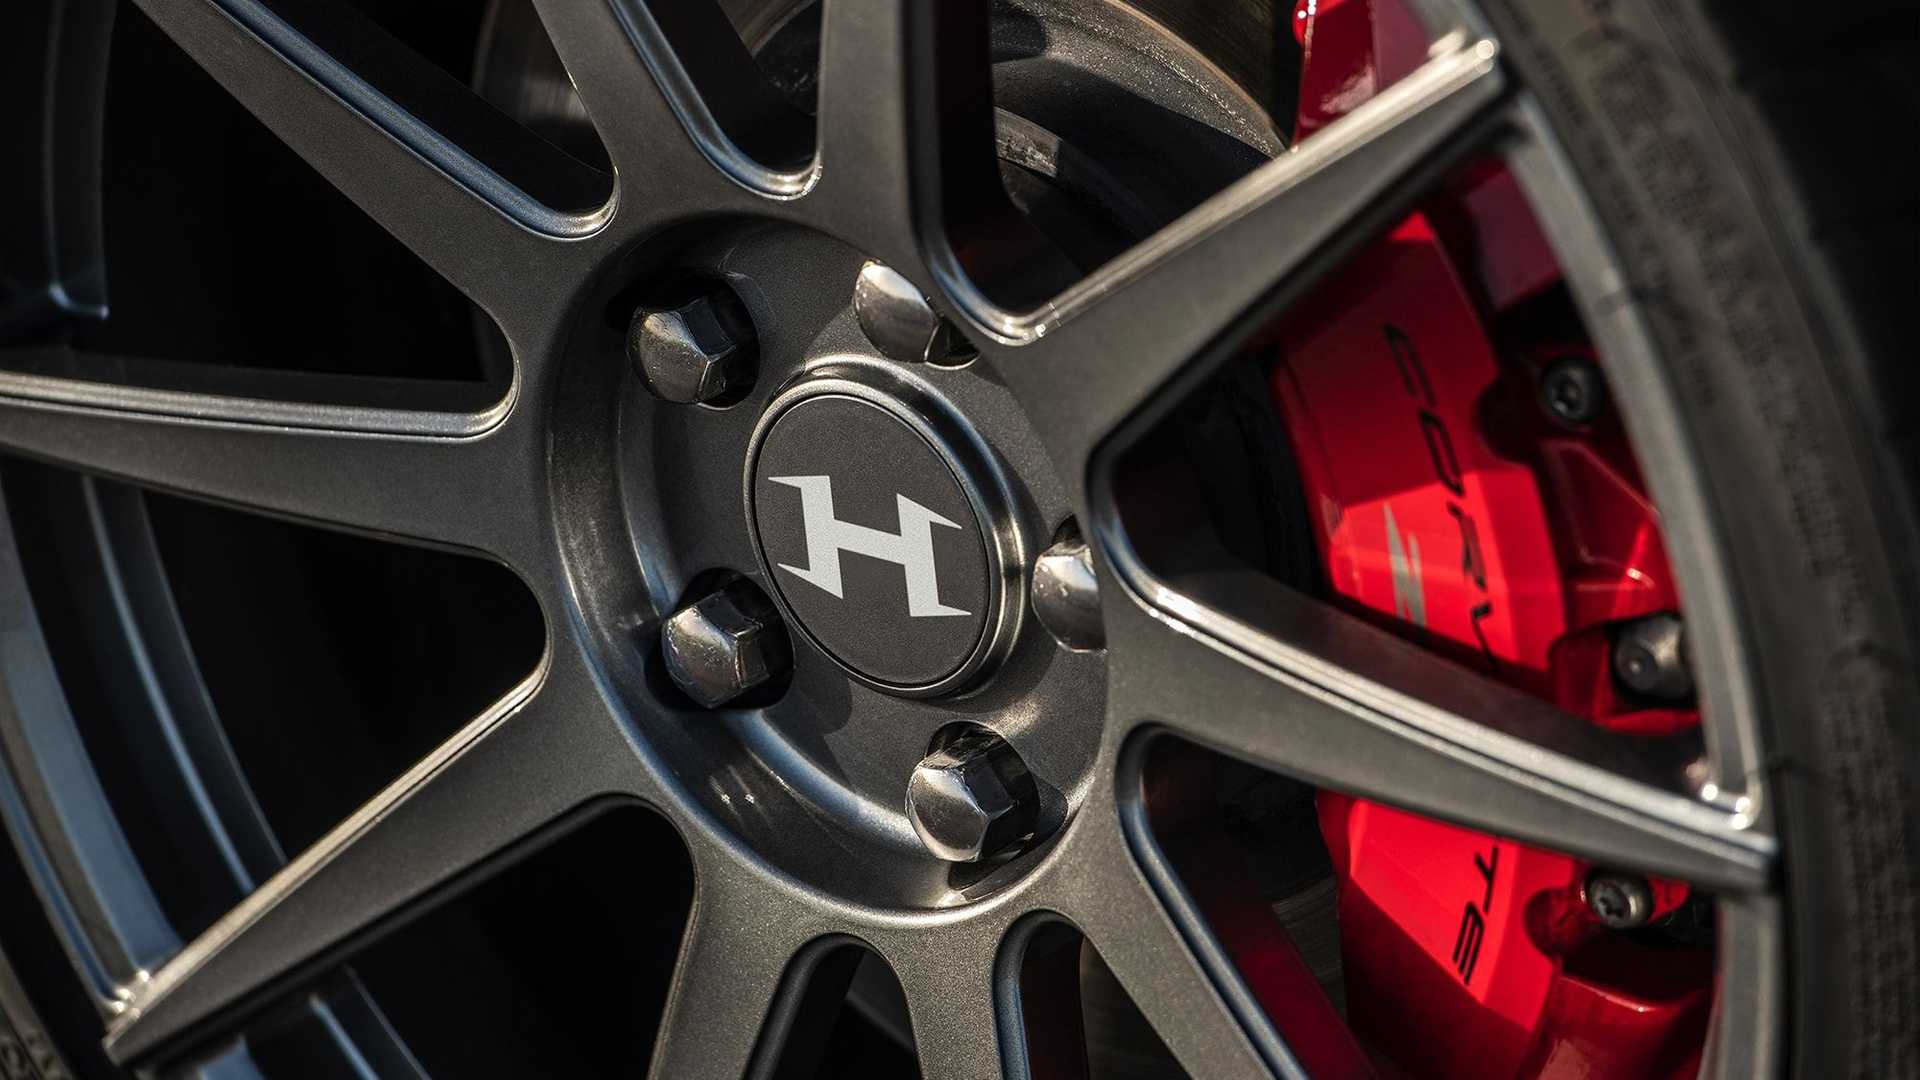 Working on the C8 'Vette, the Hennessey Performance team must have been inspired enough to start designing neat individual upgrades for it. This lightweight, aerodynamically shaped forged wheel is the latest item on the list.